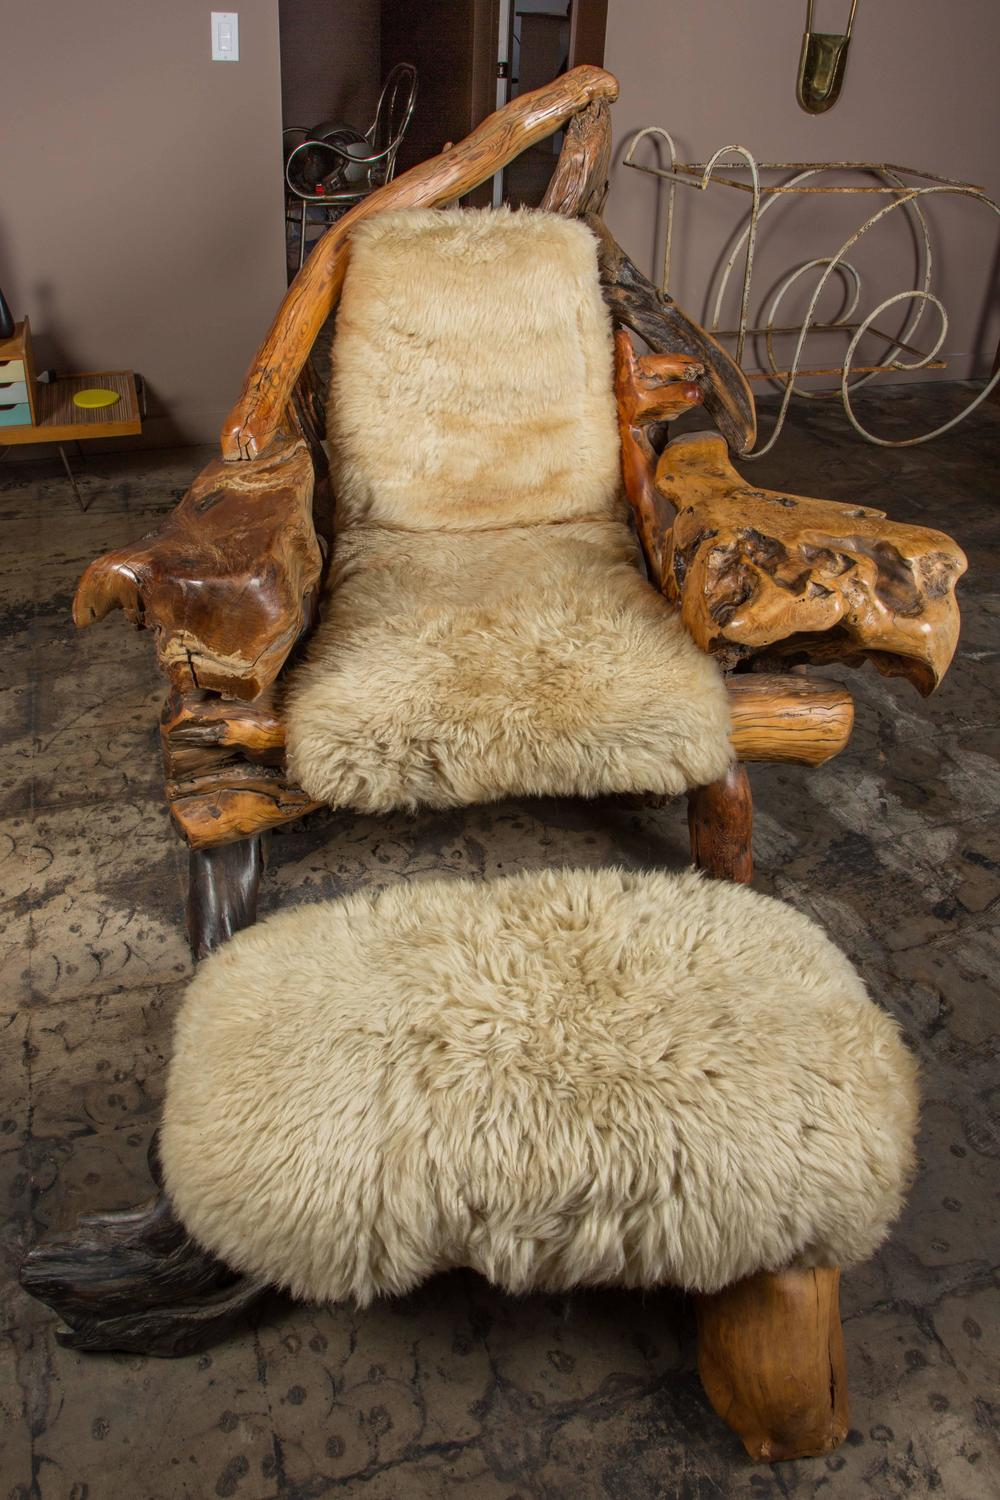 Oversize Biomorphic Burl Wood Lounge Chair And Ottoman